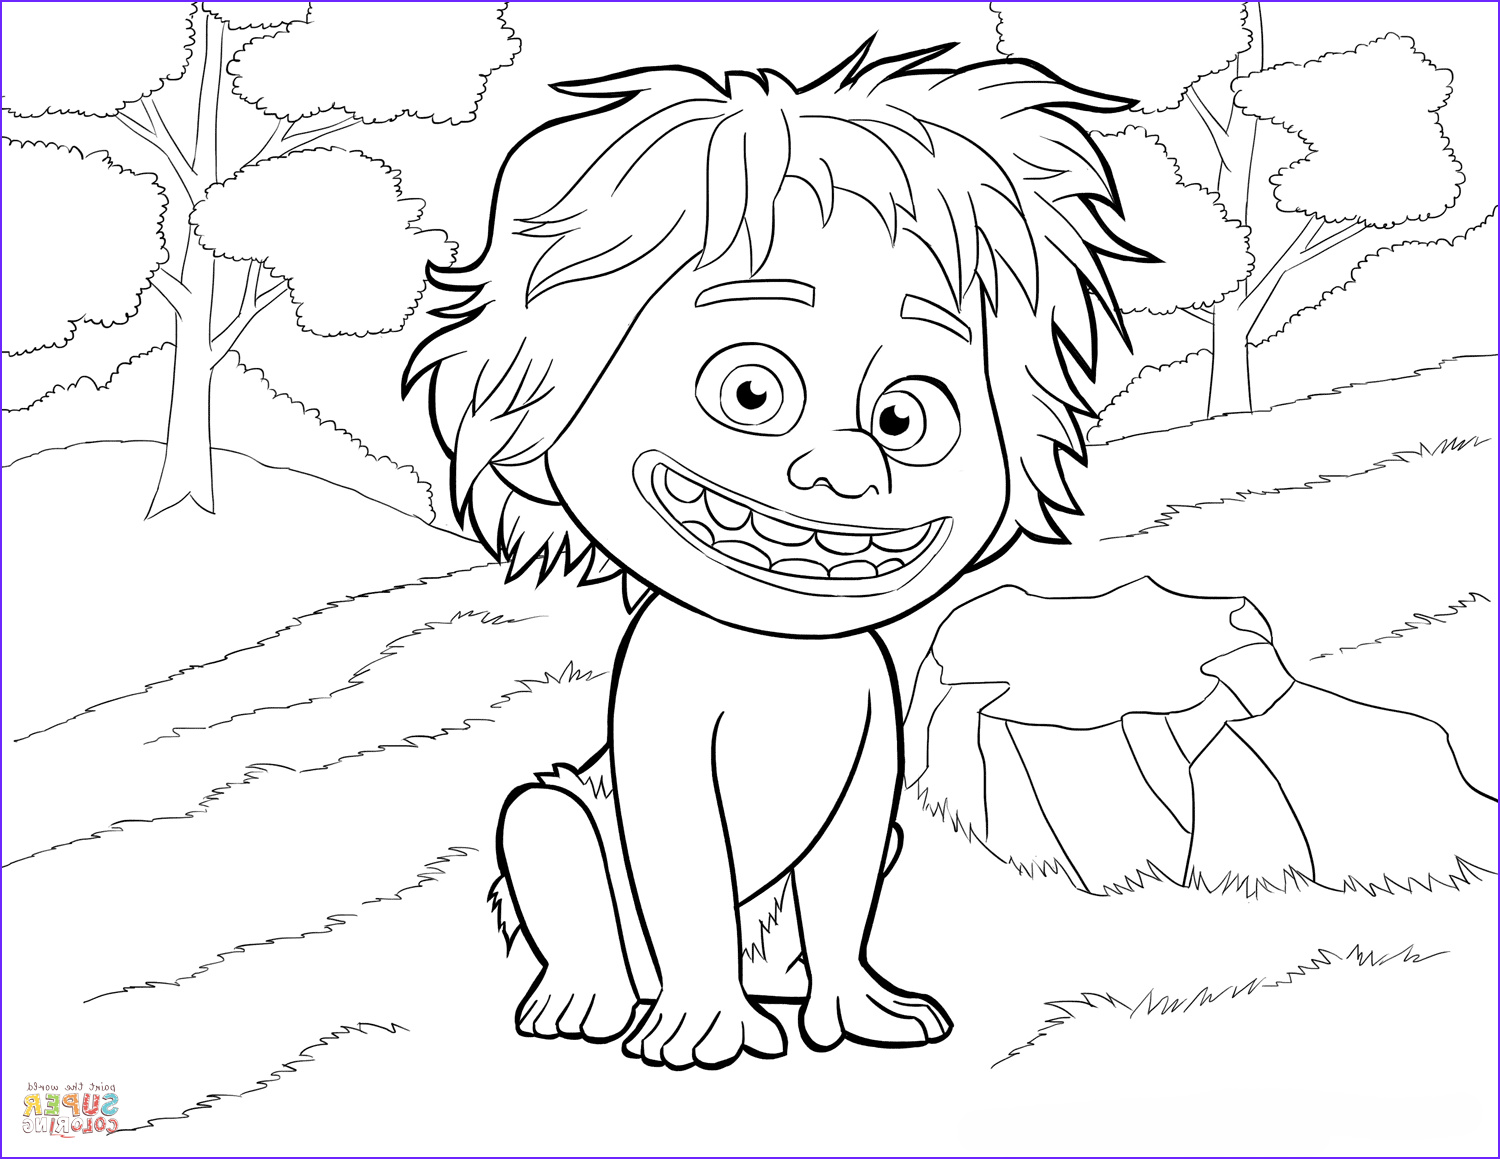 The Good Dinosaur Coloring Pages Cool Image Spot From the Good Dinosaur Coloring Page